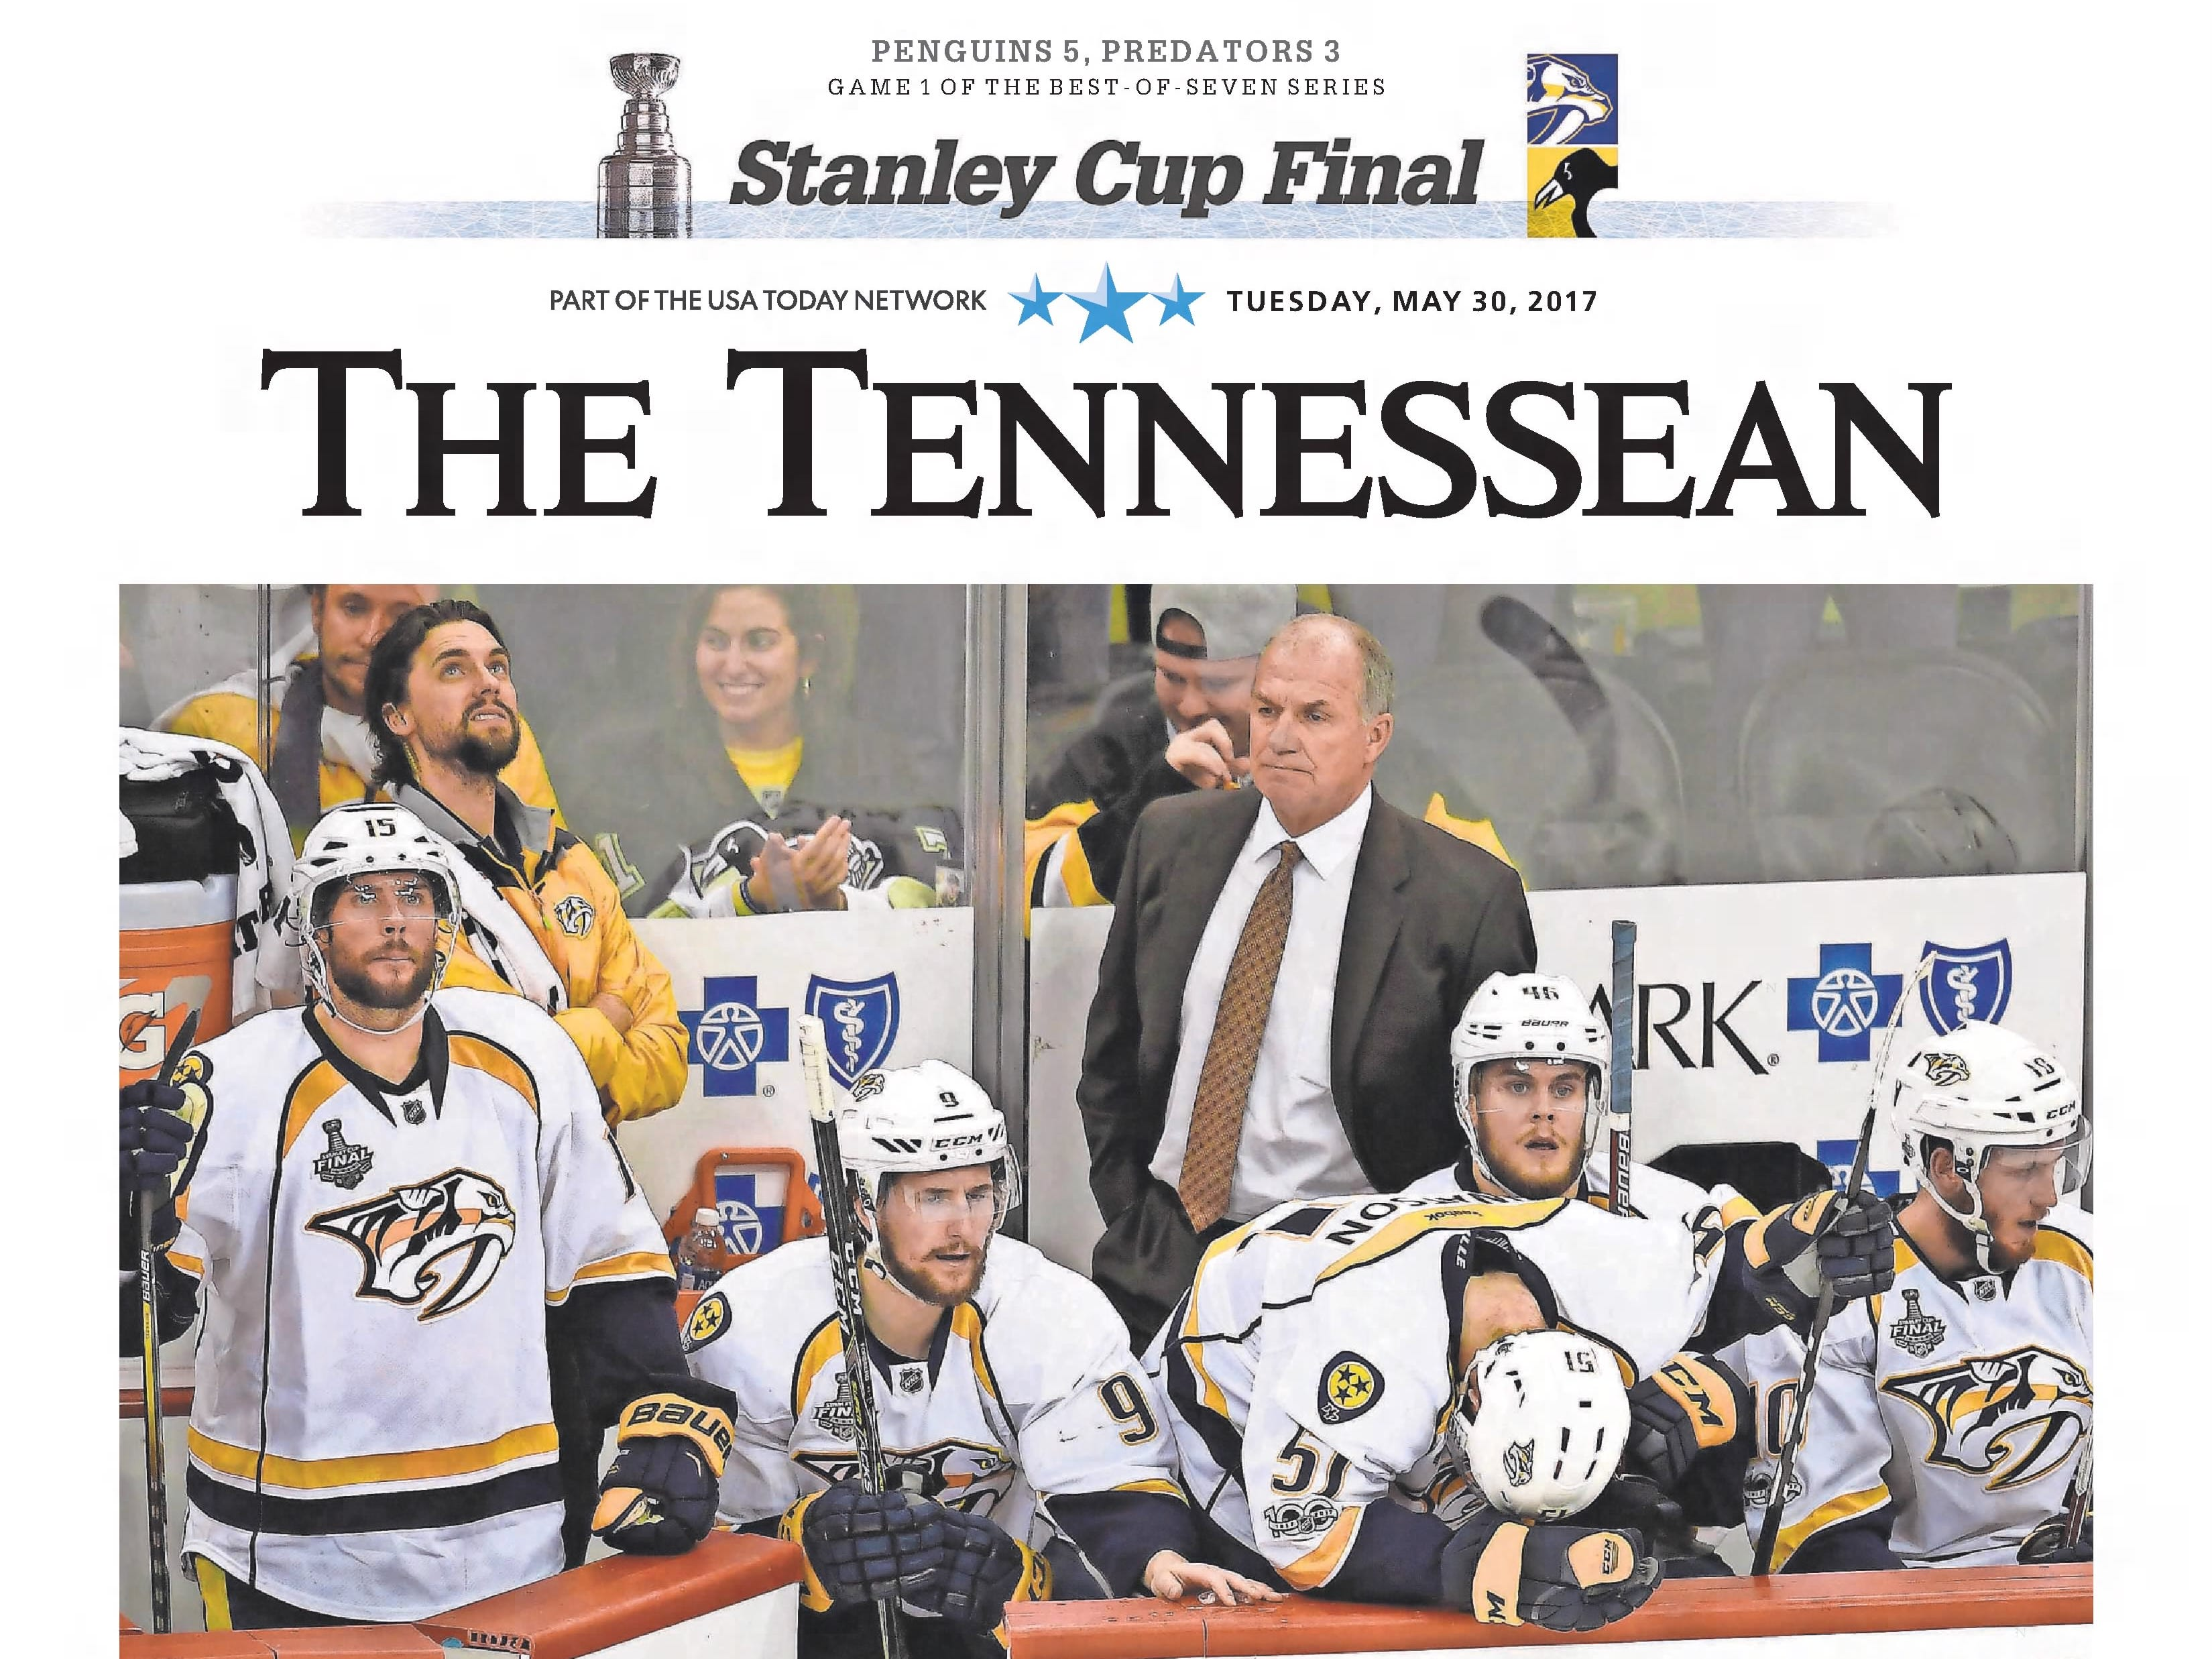 The front page of the May 30, 2017 of The Tennessean for the coverage of the Nashville Predators Stanley Cup run.